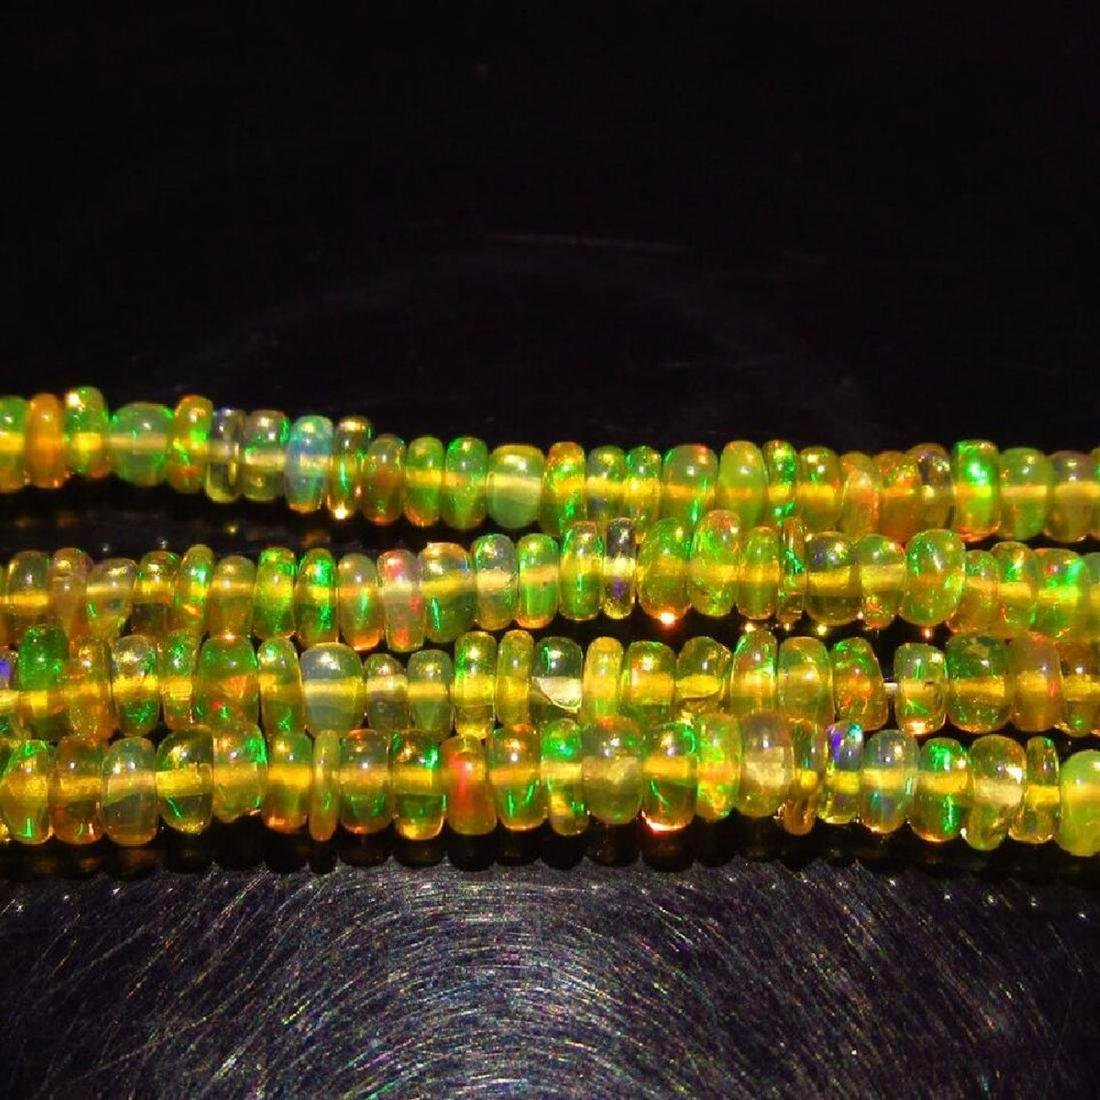 26.25 Ctw Natural Loose Drilled Fire Opal Beads - 3